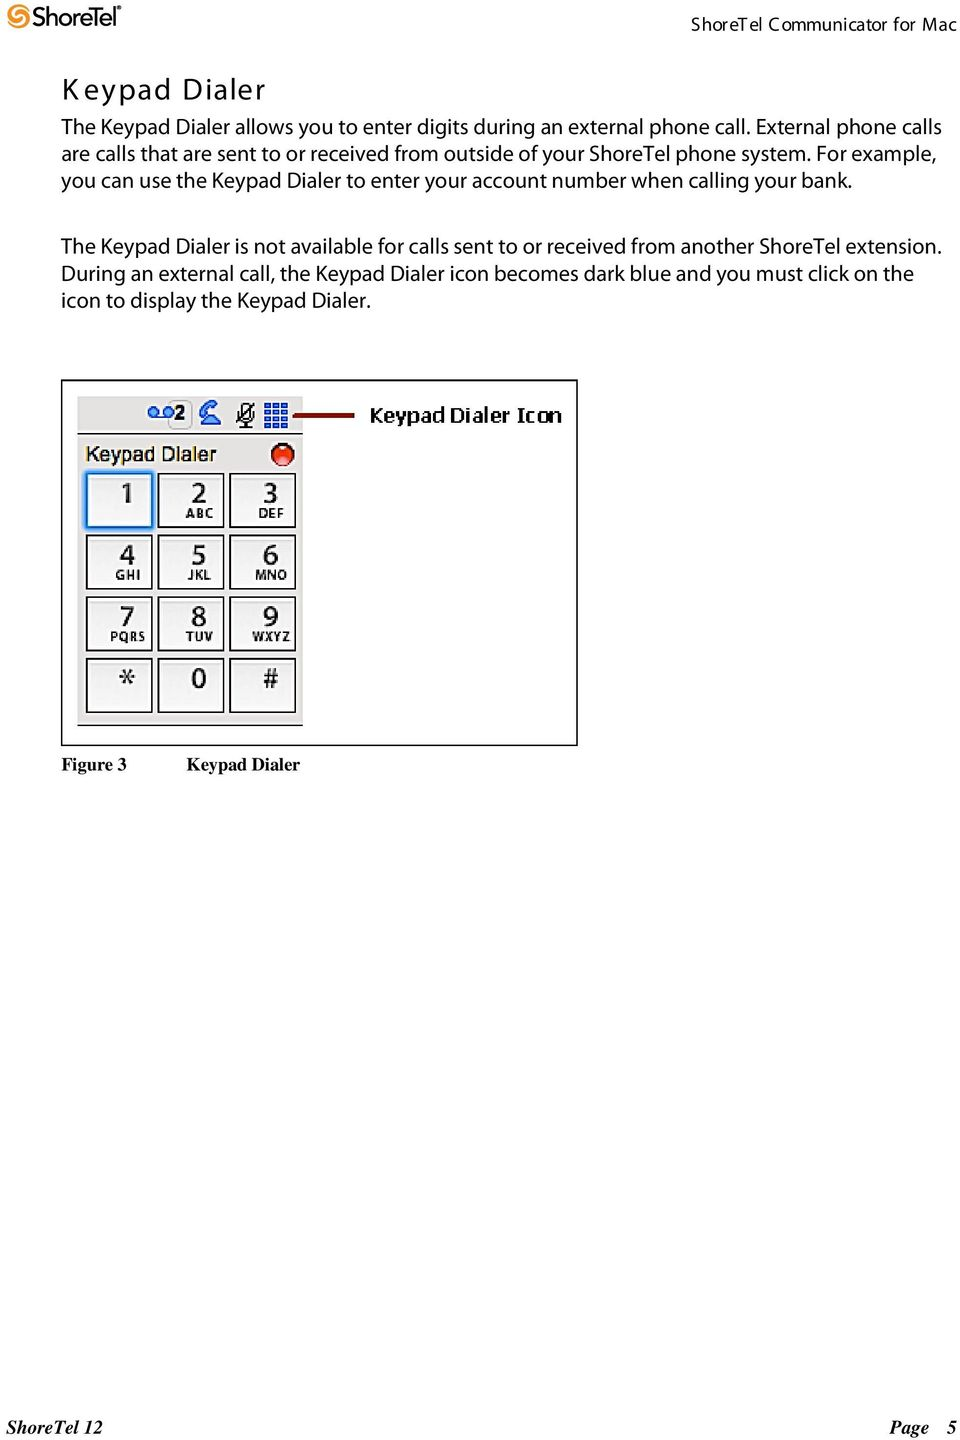 For example, you can use the Keypad Dialer to enter your account number when calling your bank.